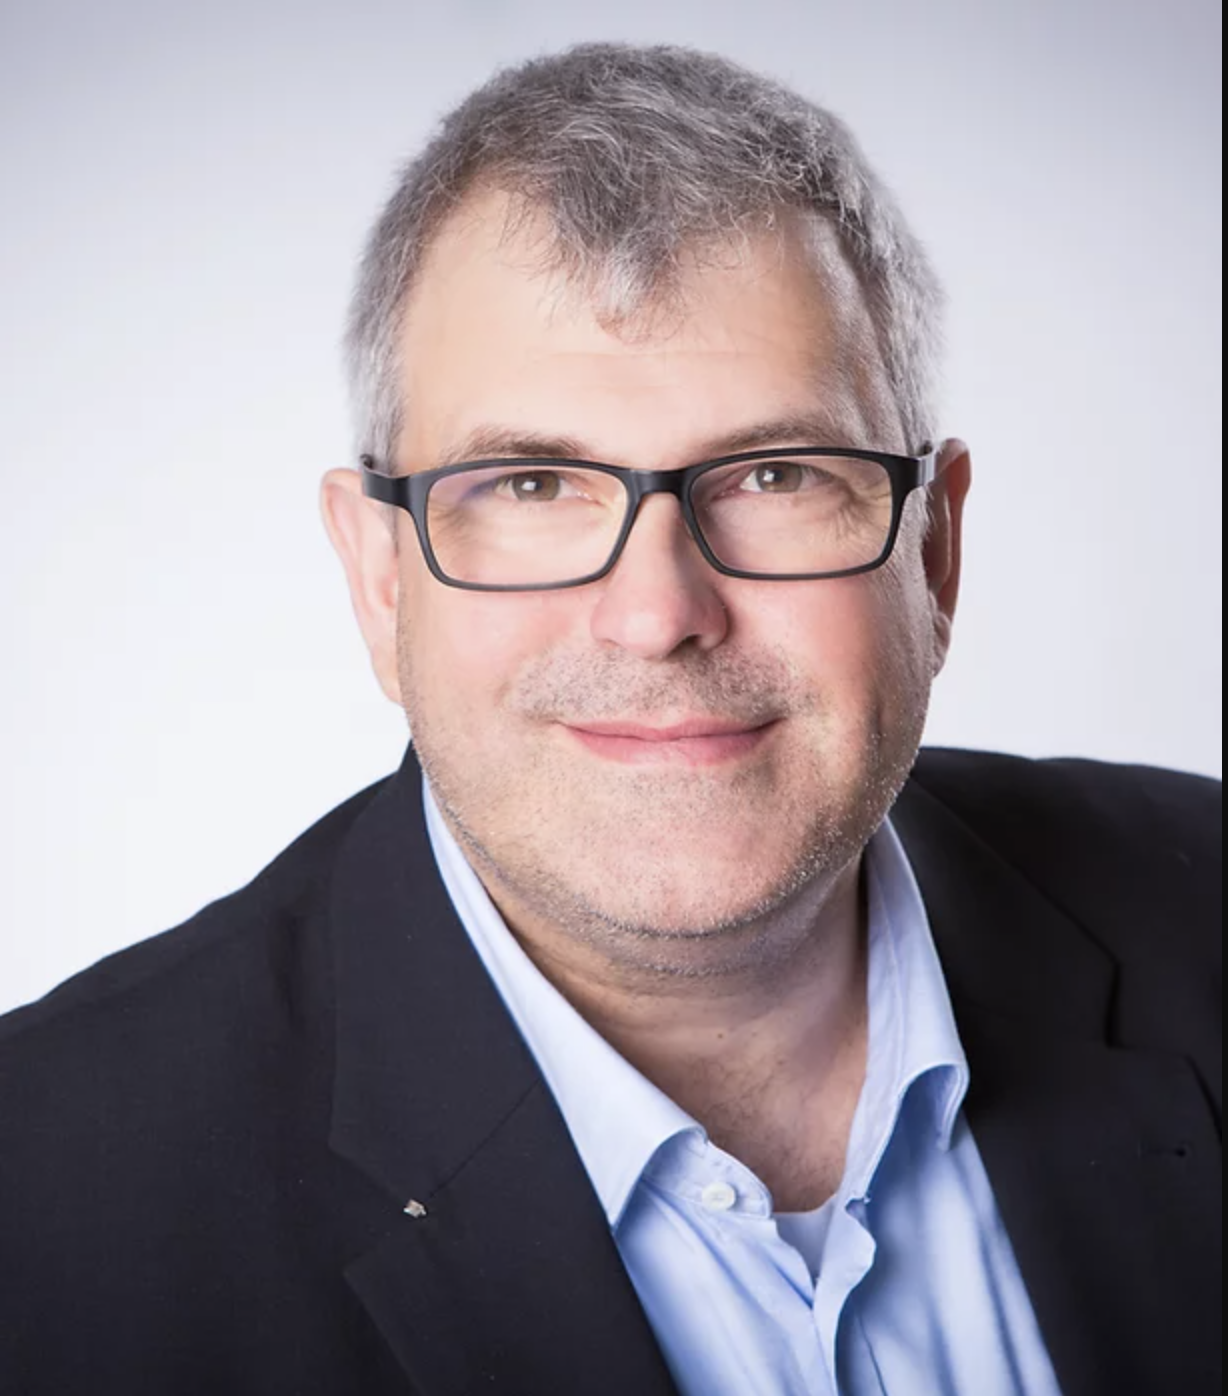 Portrait photo of Volker Himmen, lawyer and owner of RKH